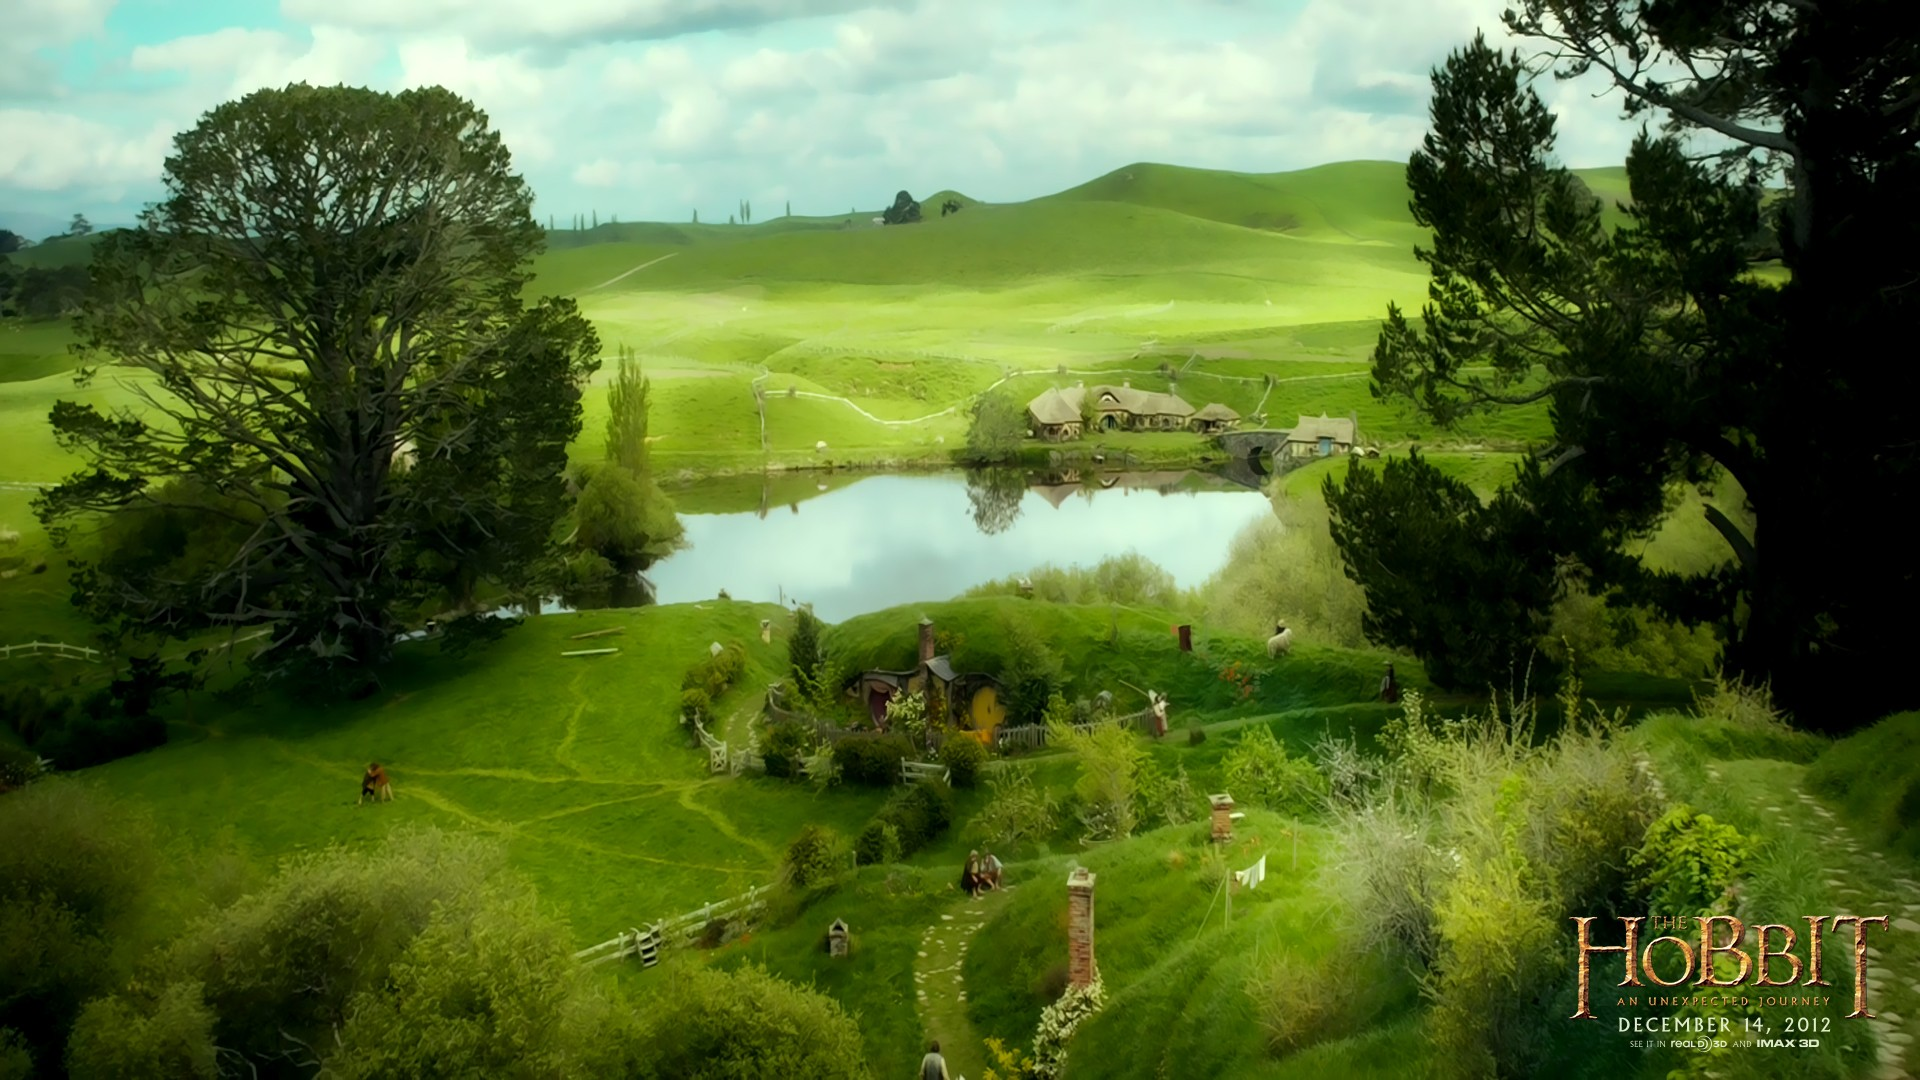 Shire Hobbit wallpaper 223692 1920x1080